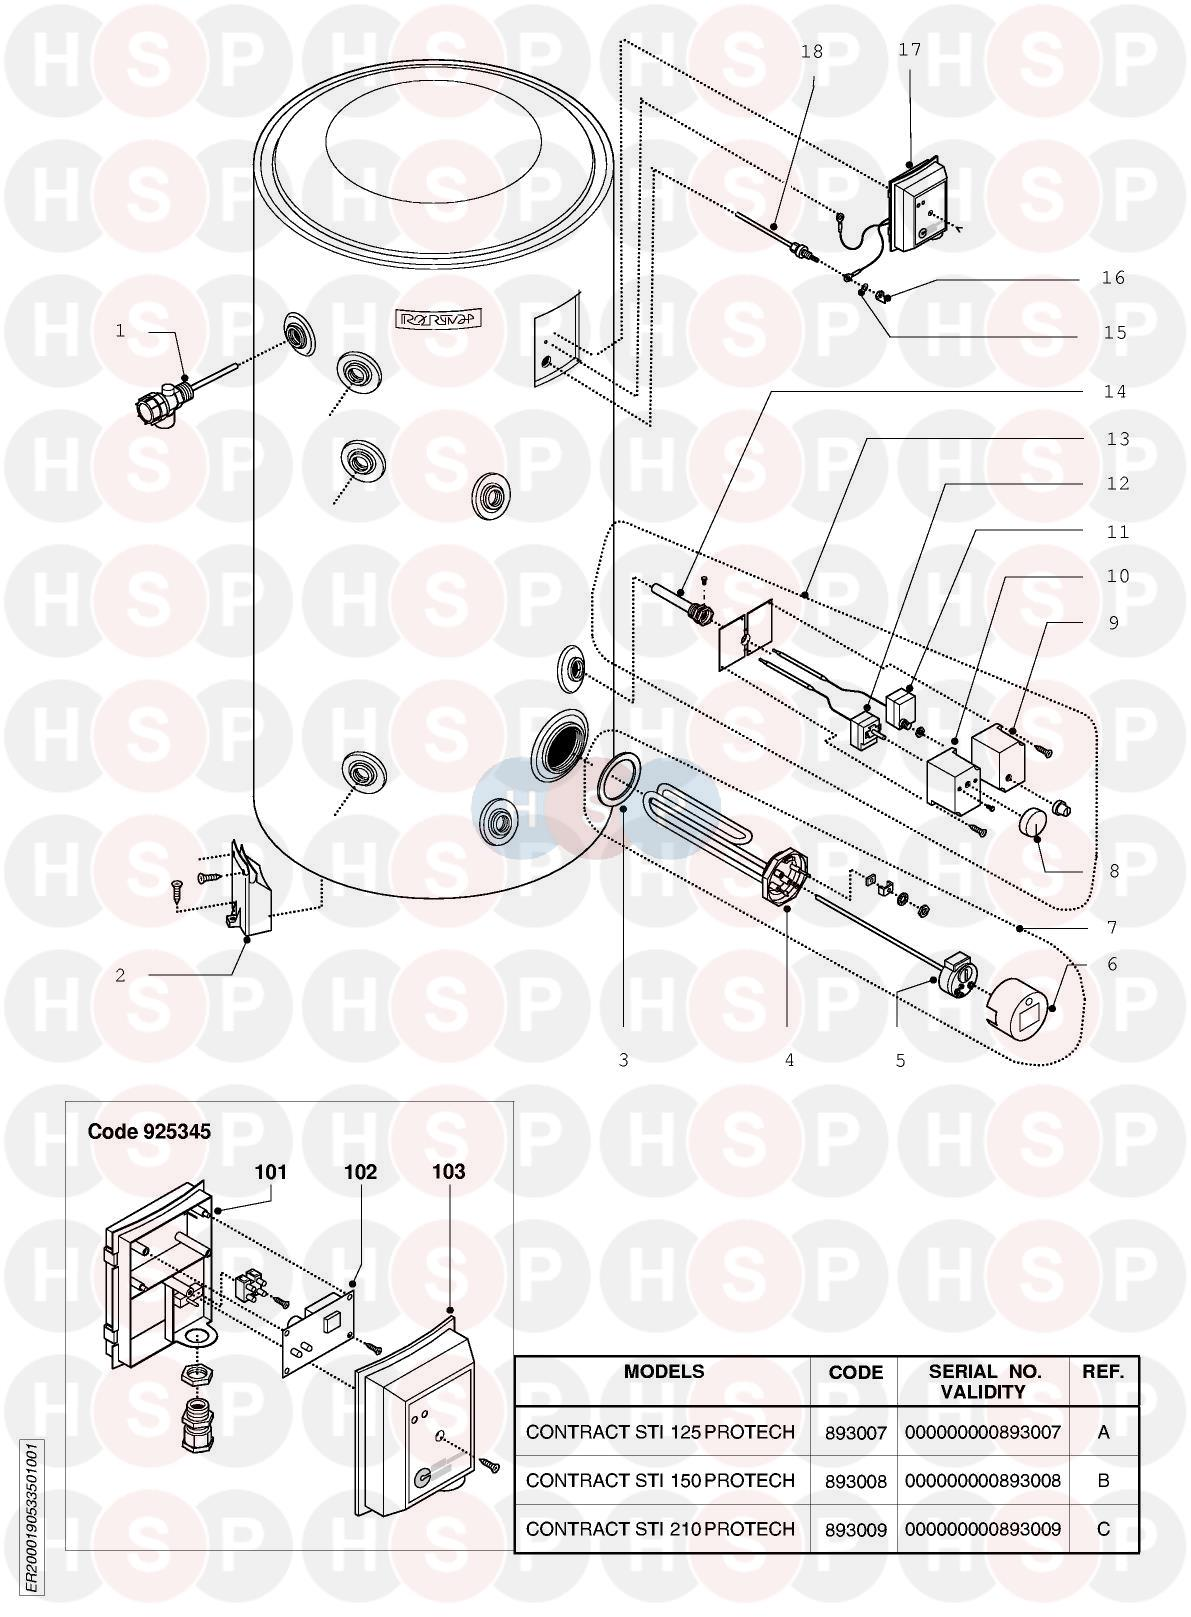 EXPLODED VIEW diagram for Ariston CONTRACT STI 150 PROTECH